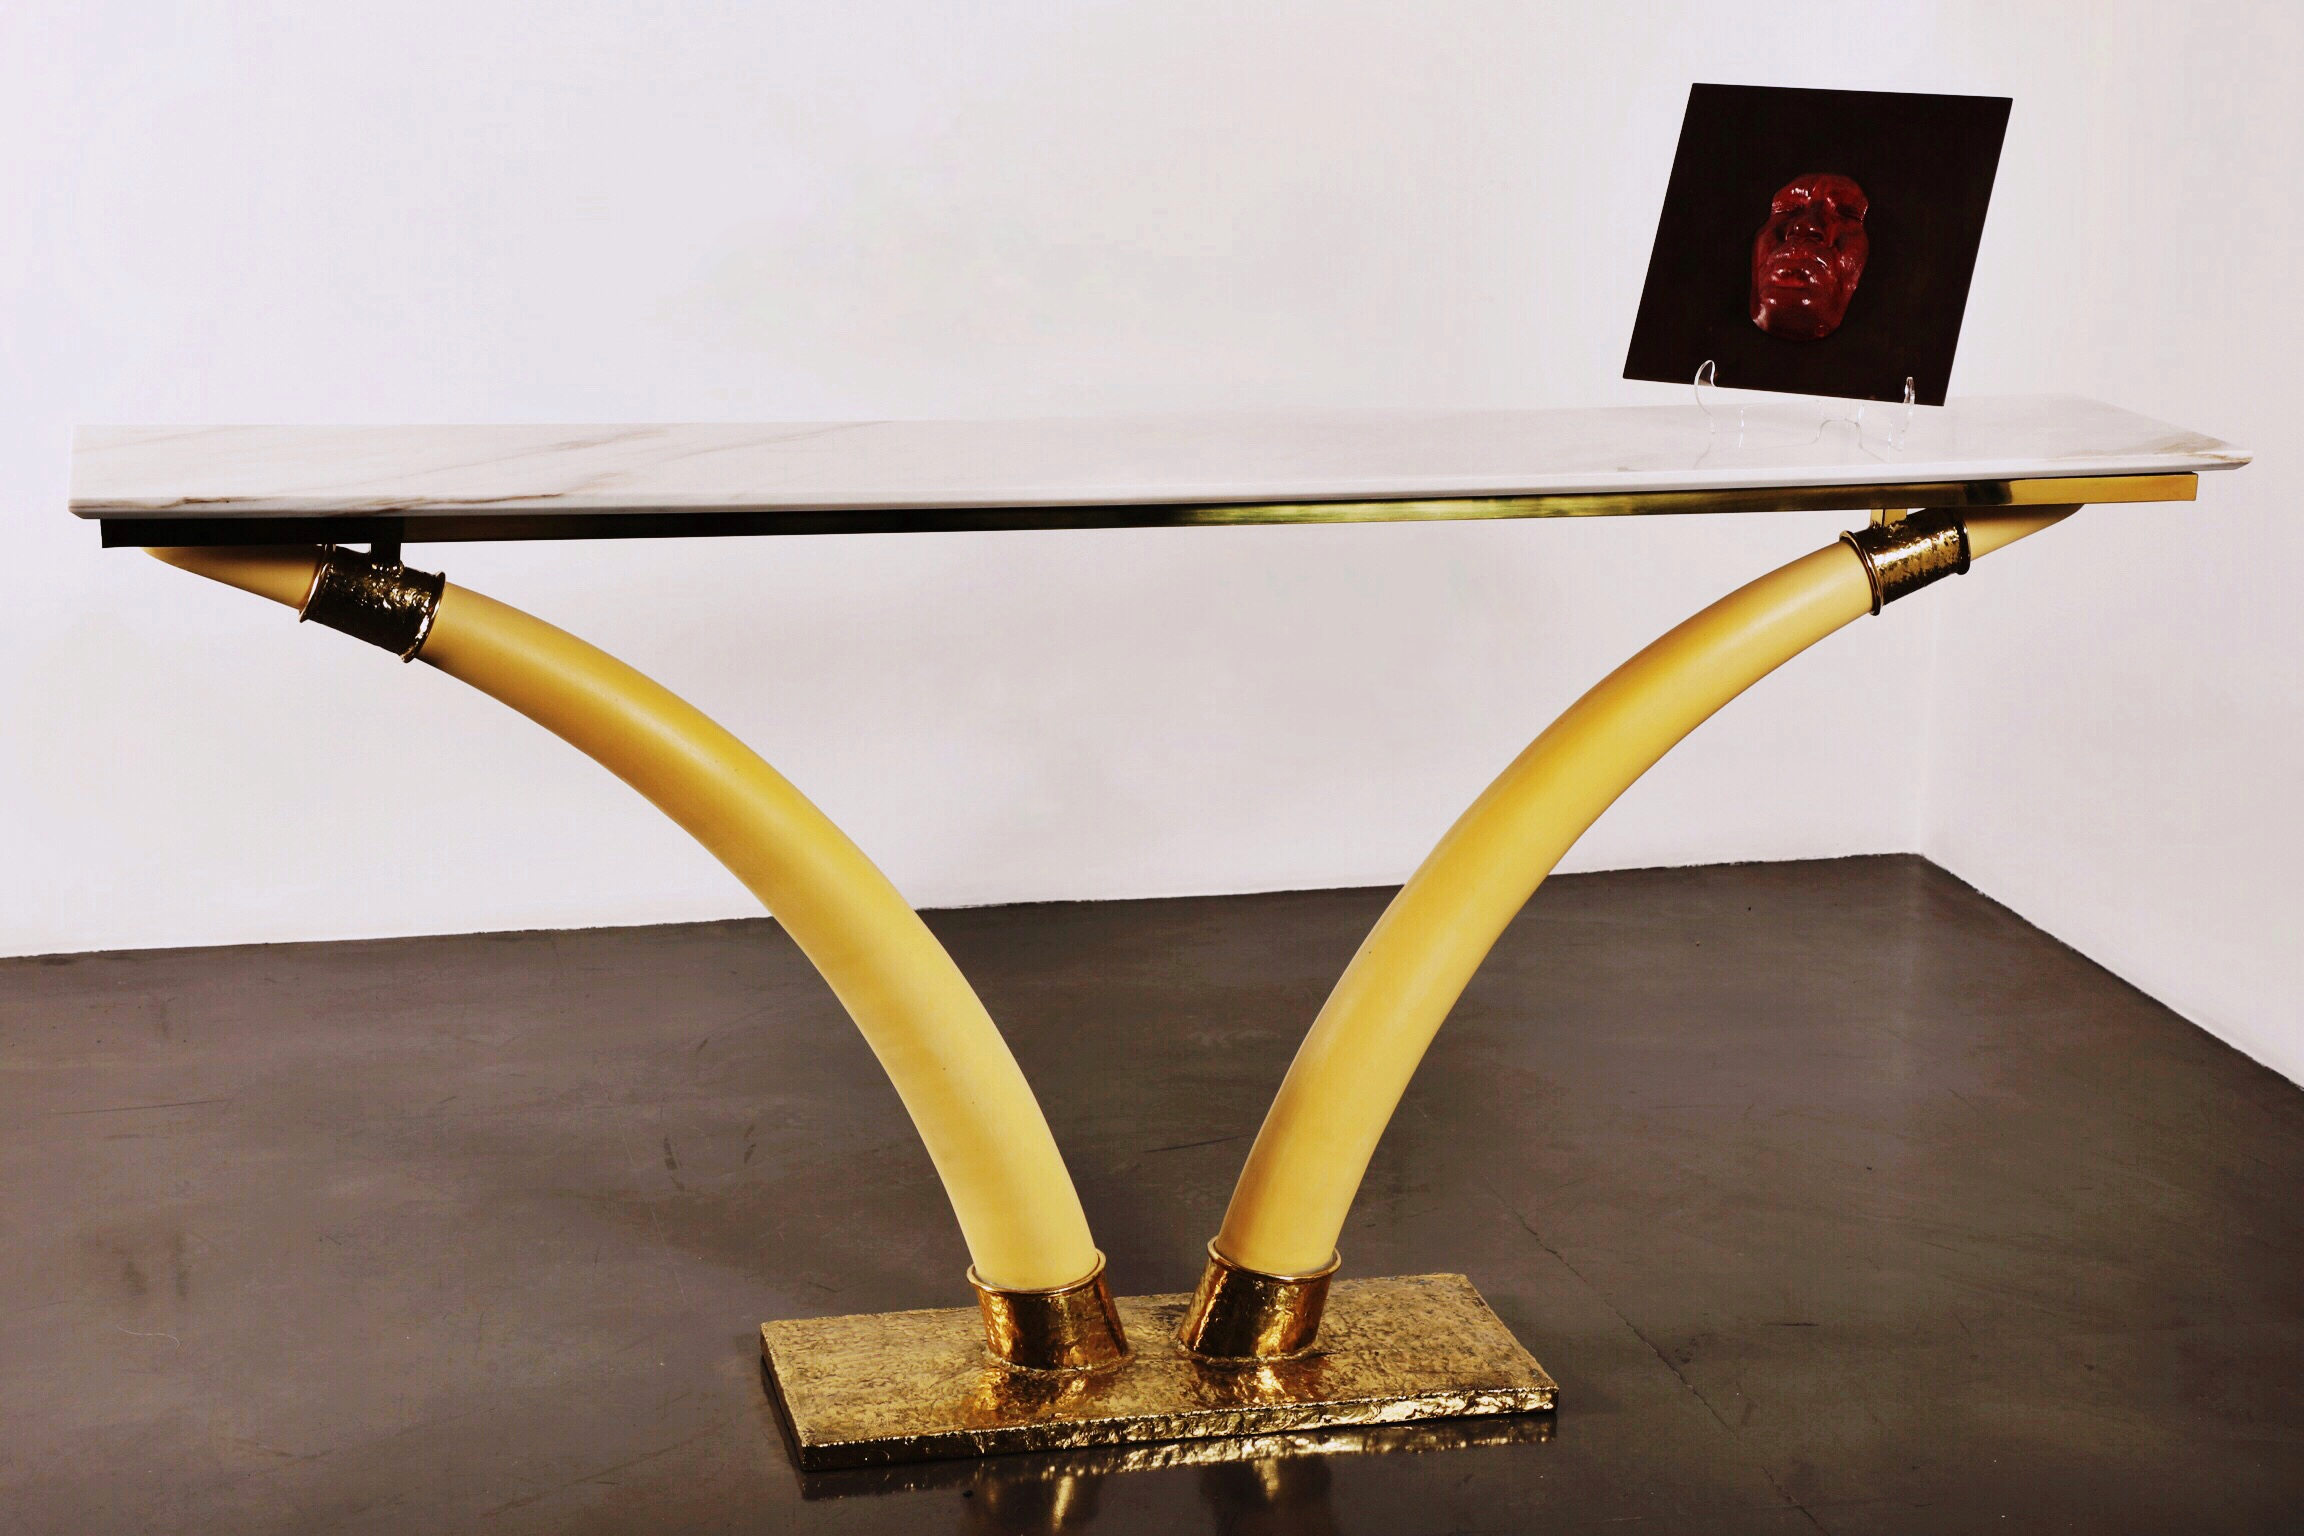 Console Et Defenses En Ivoire - 2012Ivory and bronze88 x 190 x 33 cm